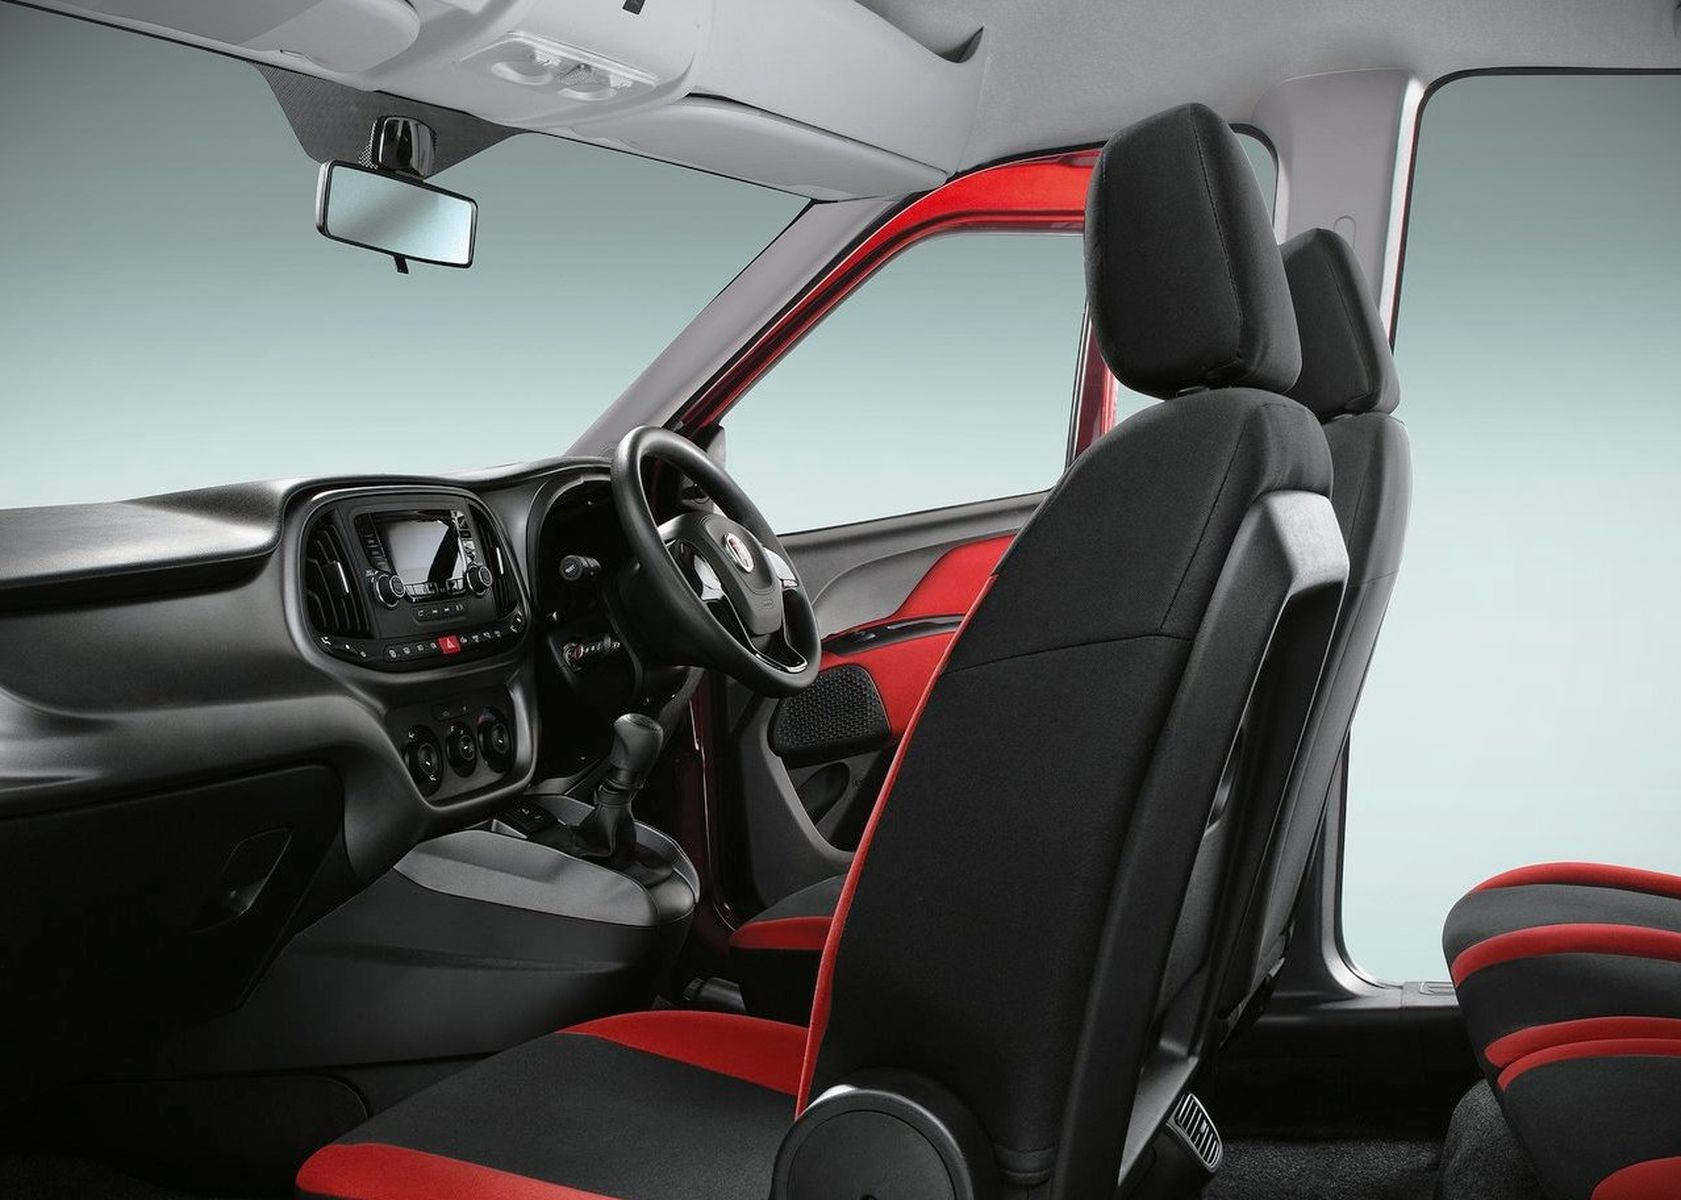 2017 Fiat Doblo interior review